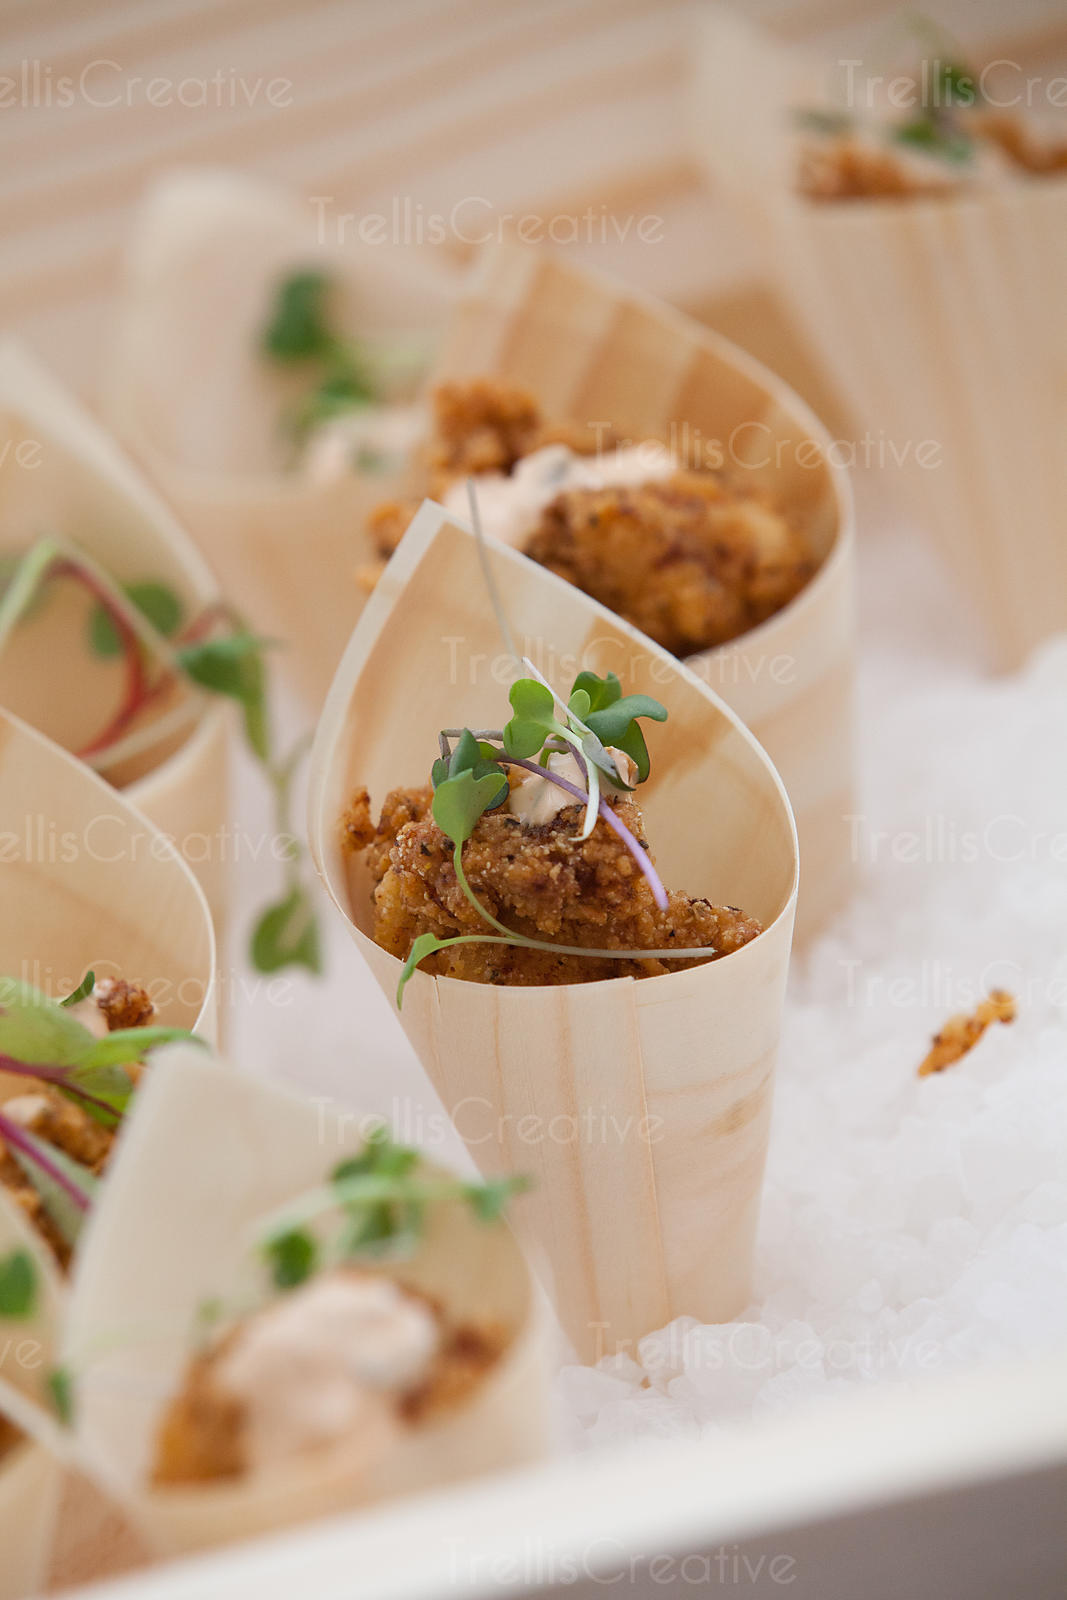 Small bite sized pieces of fried chicken served in a cone